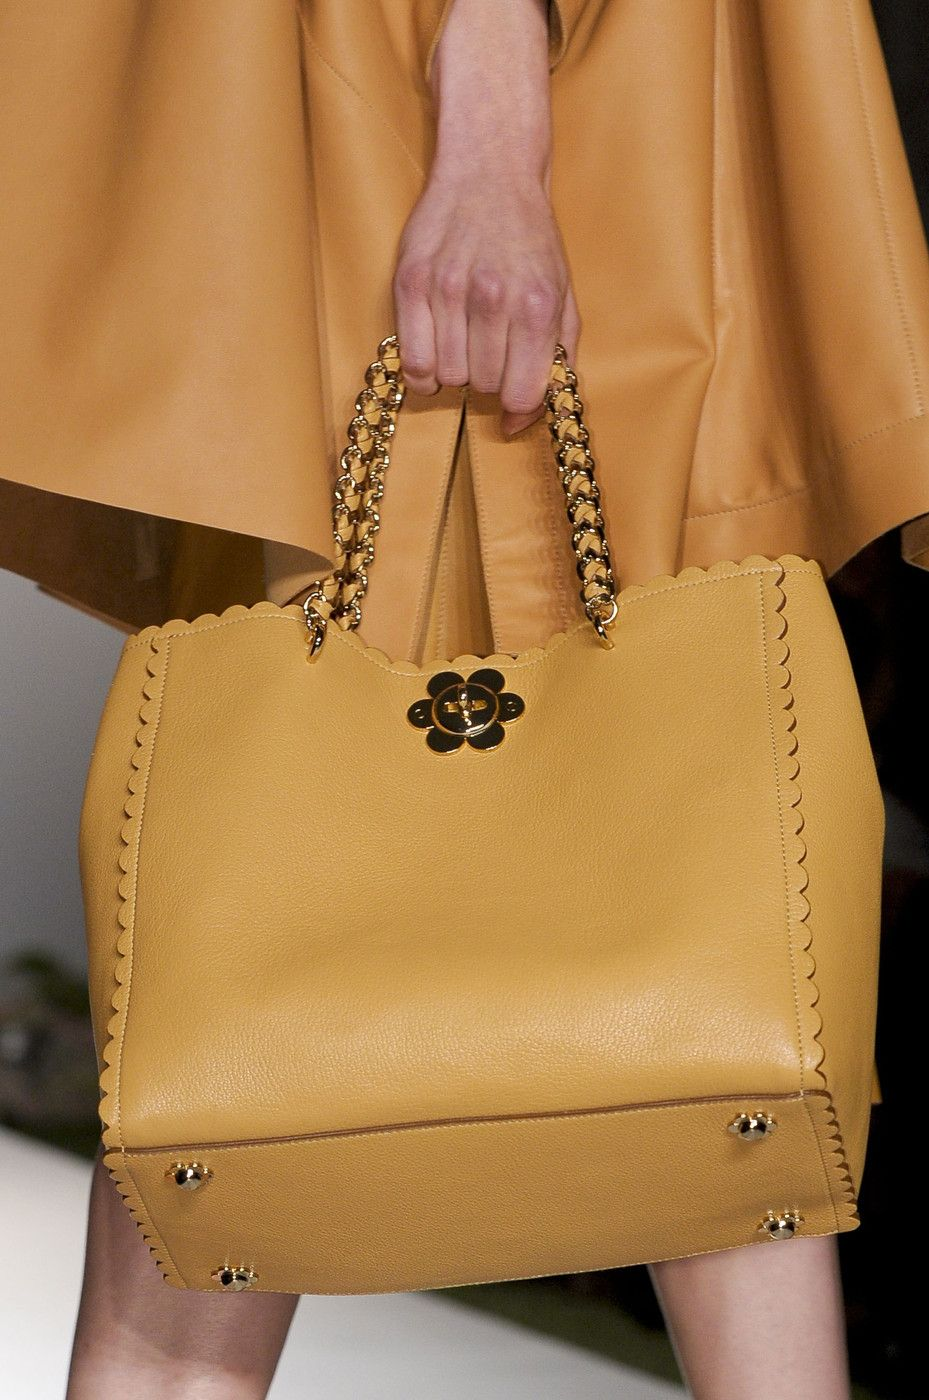 d64c8fc0365 Hannah   Fay   Mulberry   Fashion. Bags   Pinterest   Bag, Fashion ...